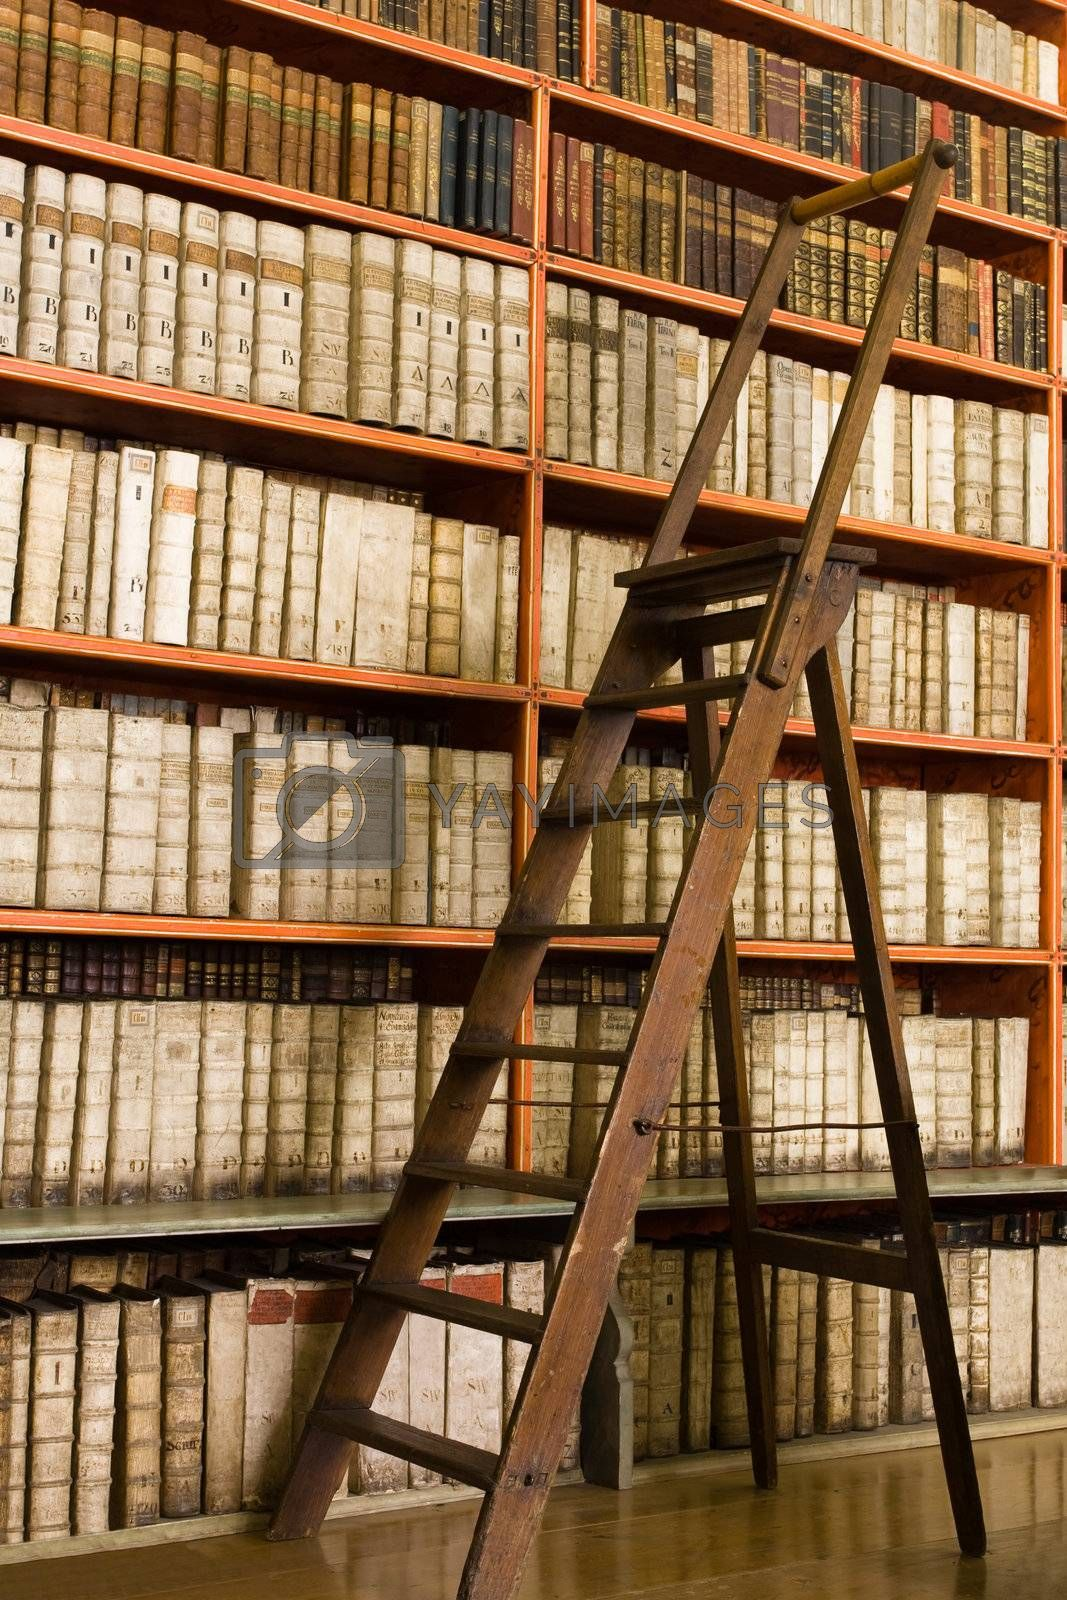 Library with aged books and ladder on the floor by SergeyAK